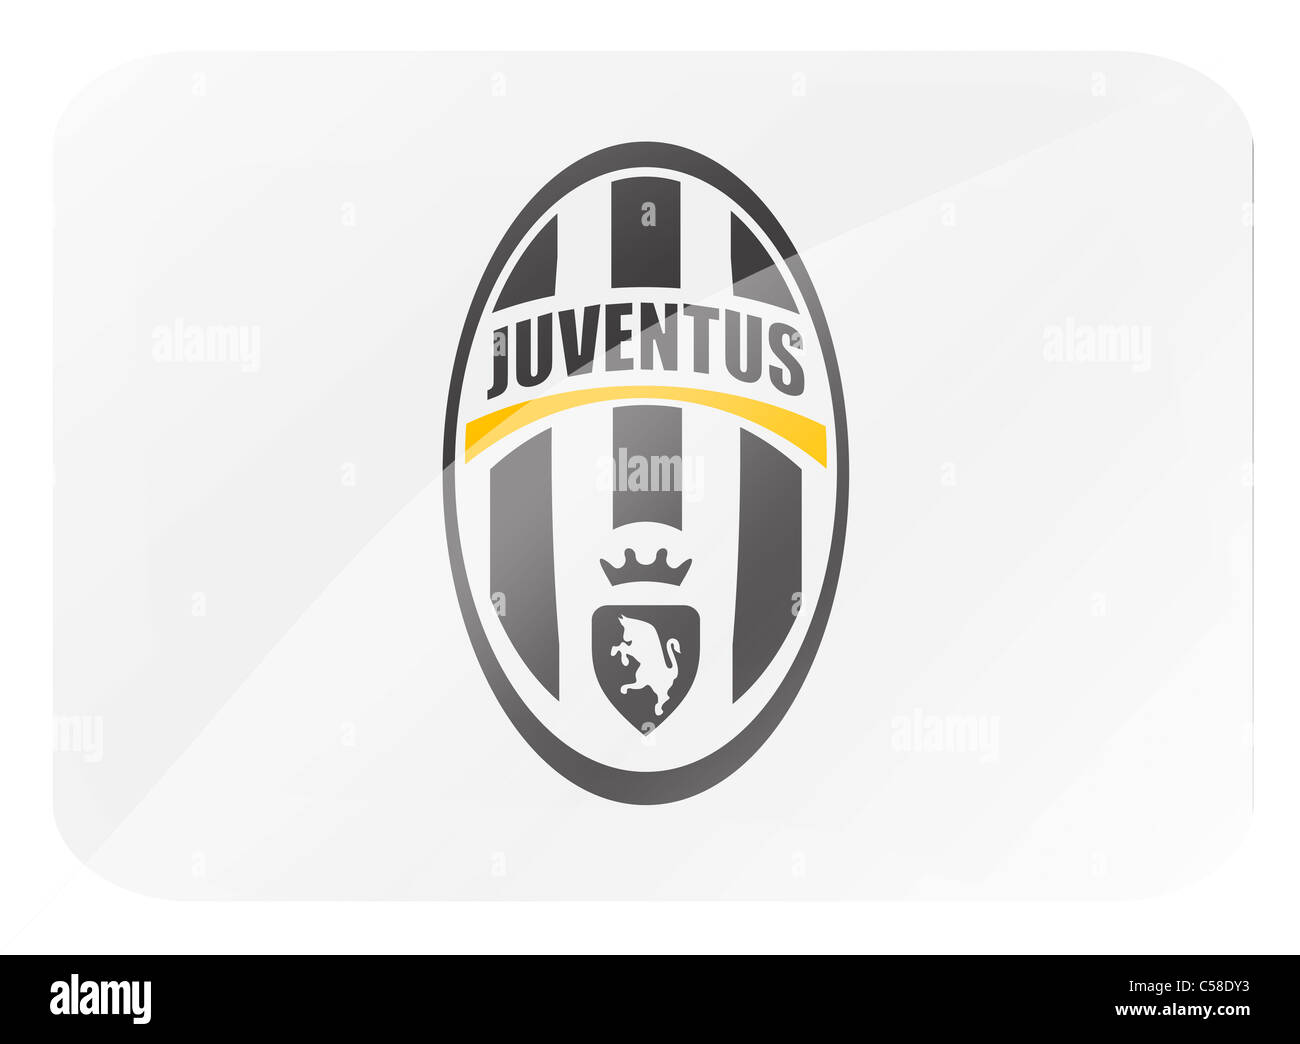 Juventus Fc Logo Emblem Symbol High Resolution Stock Photography And Images Alamy